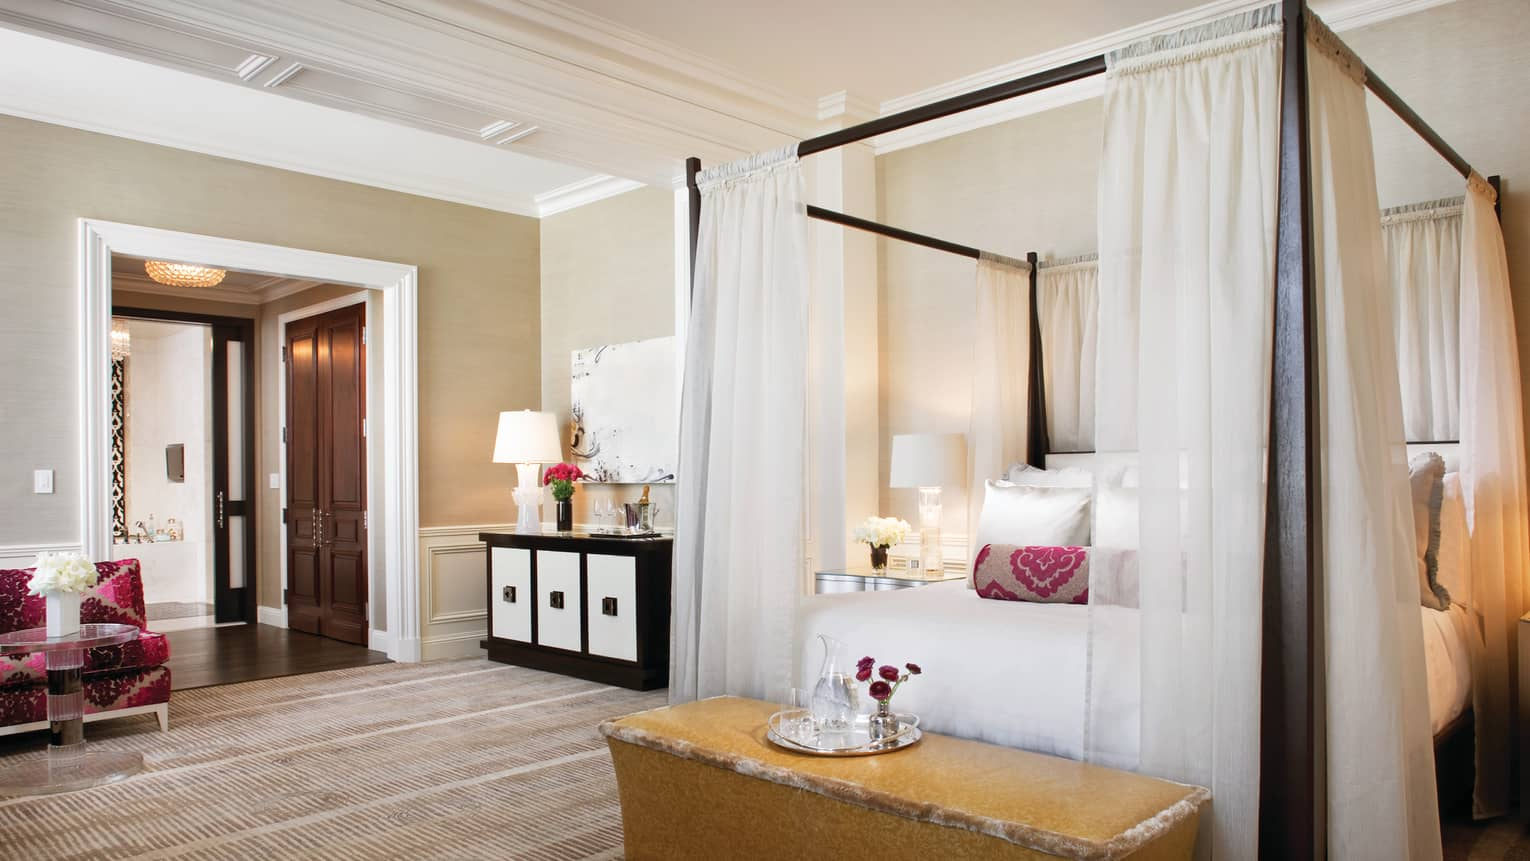 Beverly Wilshire, a Four Seasons Hotel Presidential Suite poster bed with white curtains, velvet bench with tray, water jug, flowers